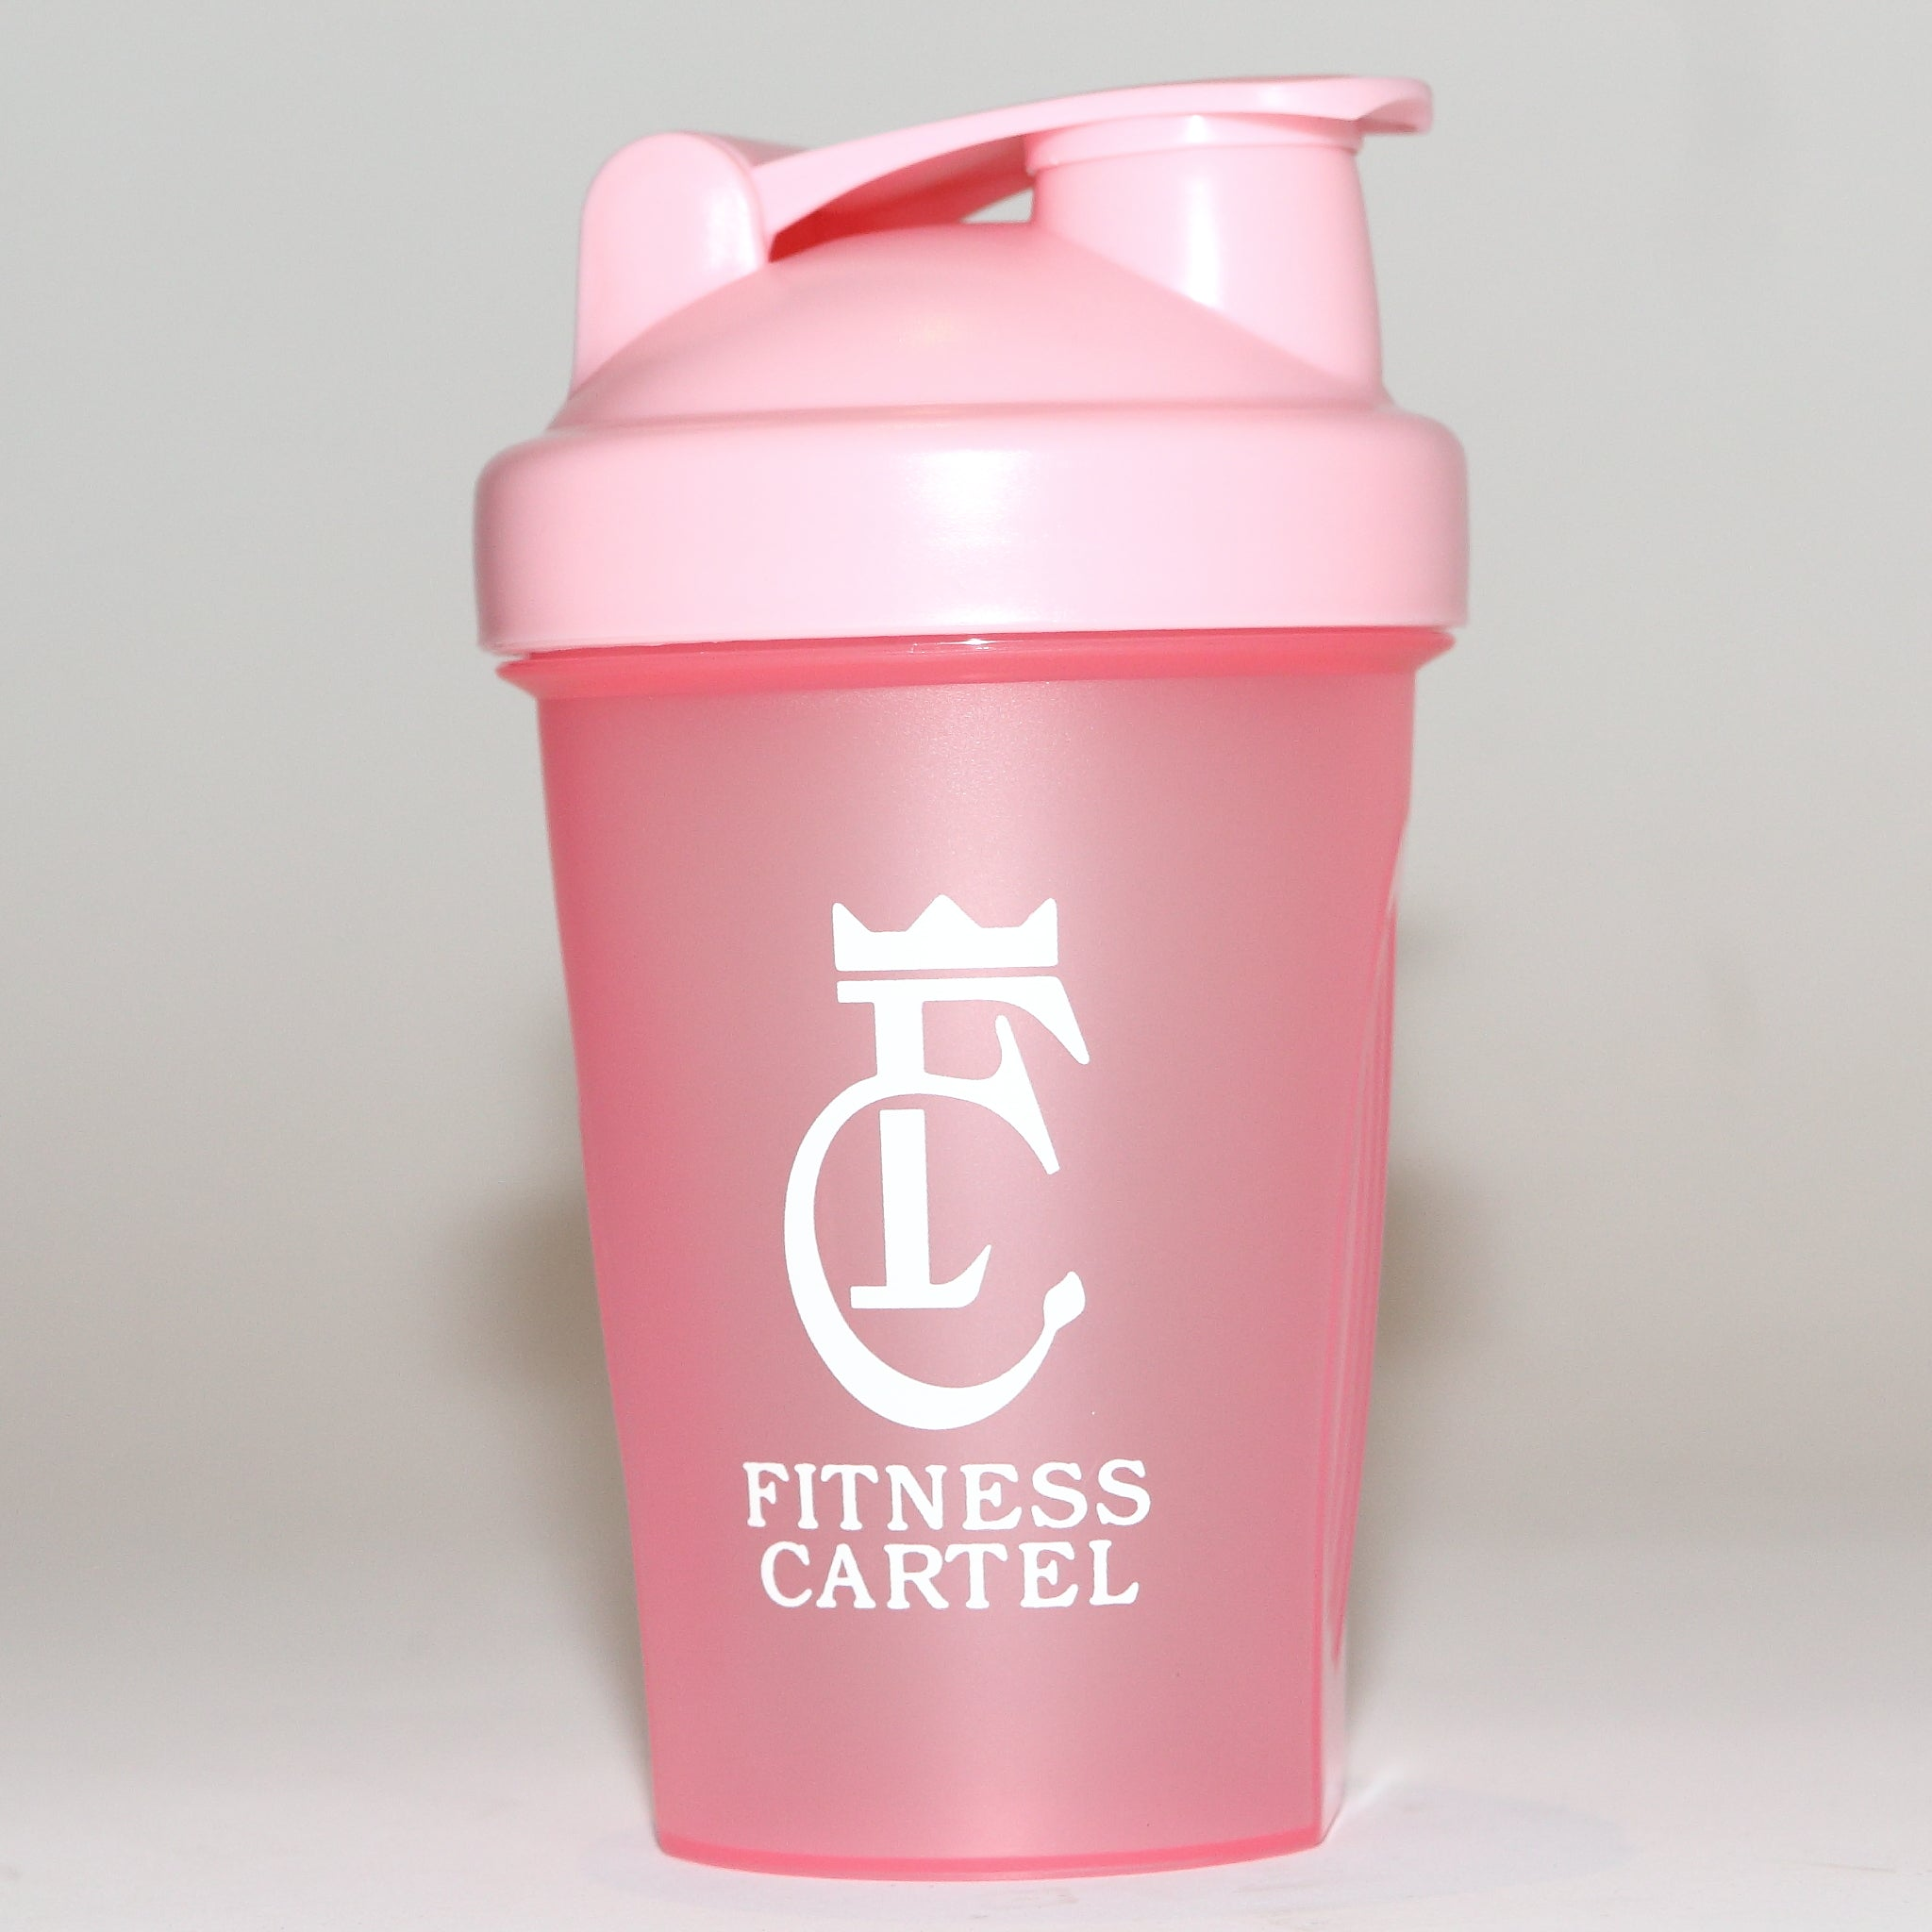 Fitness Cartel Protein Shakers